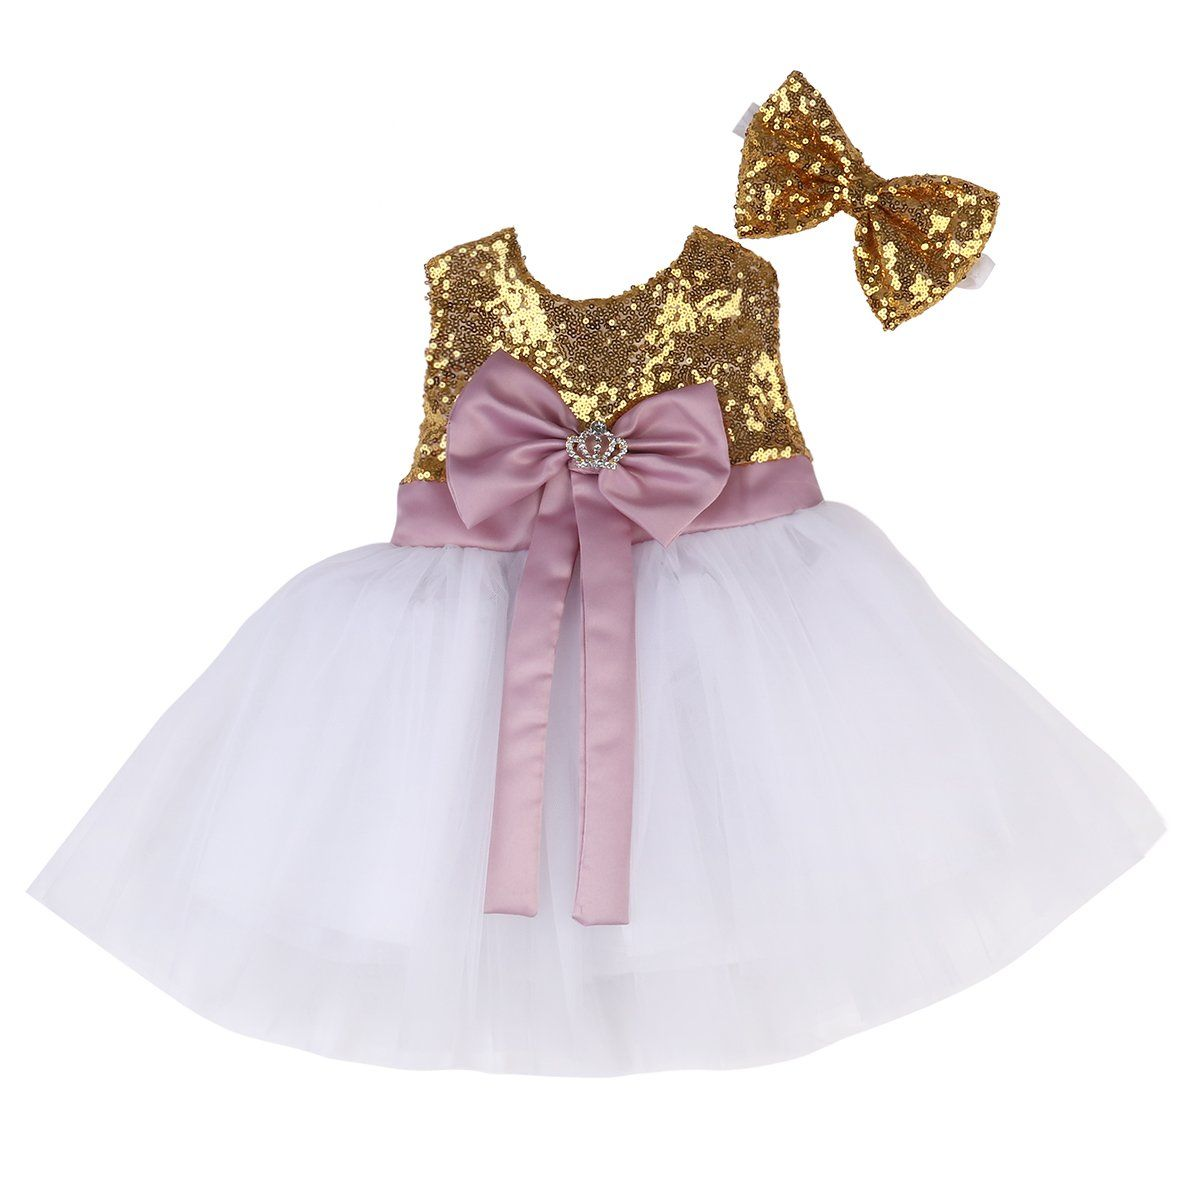 Baby girl dress sequins bowknot princess party pageant birthday tutu